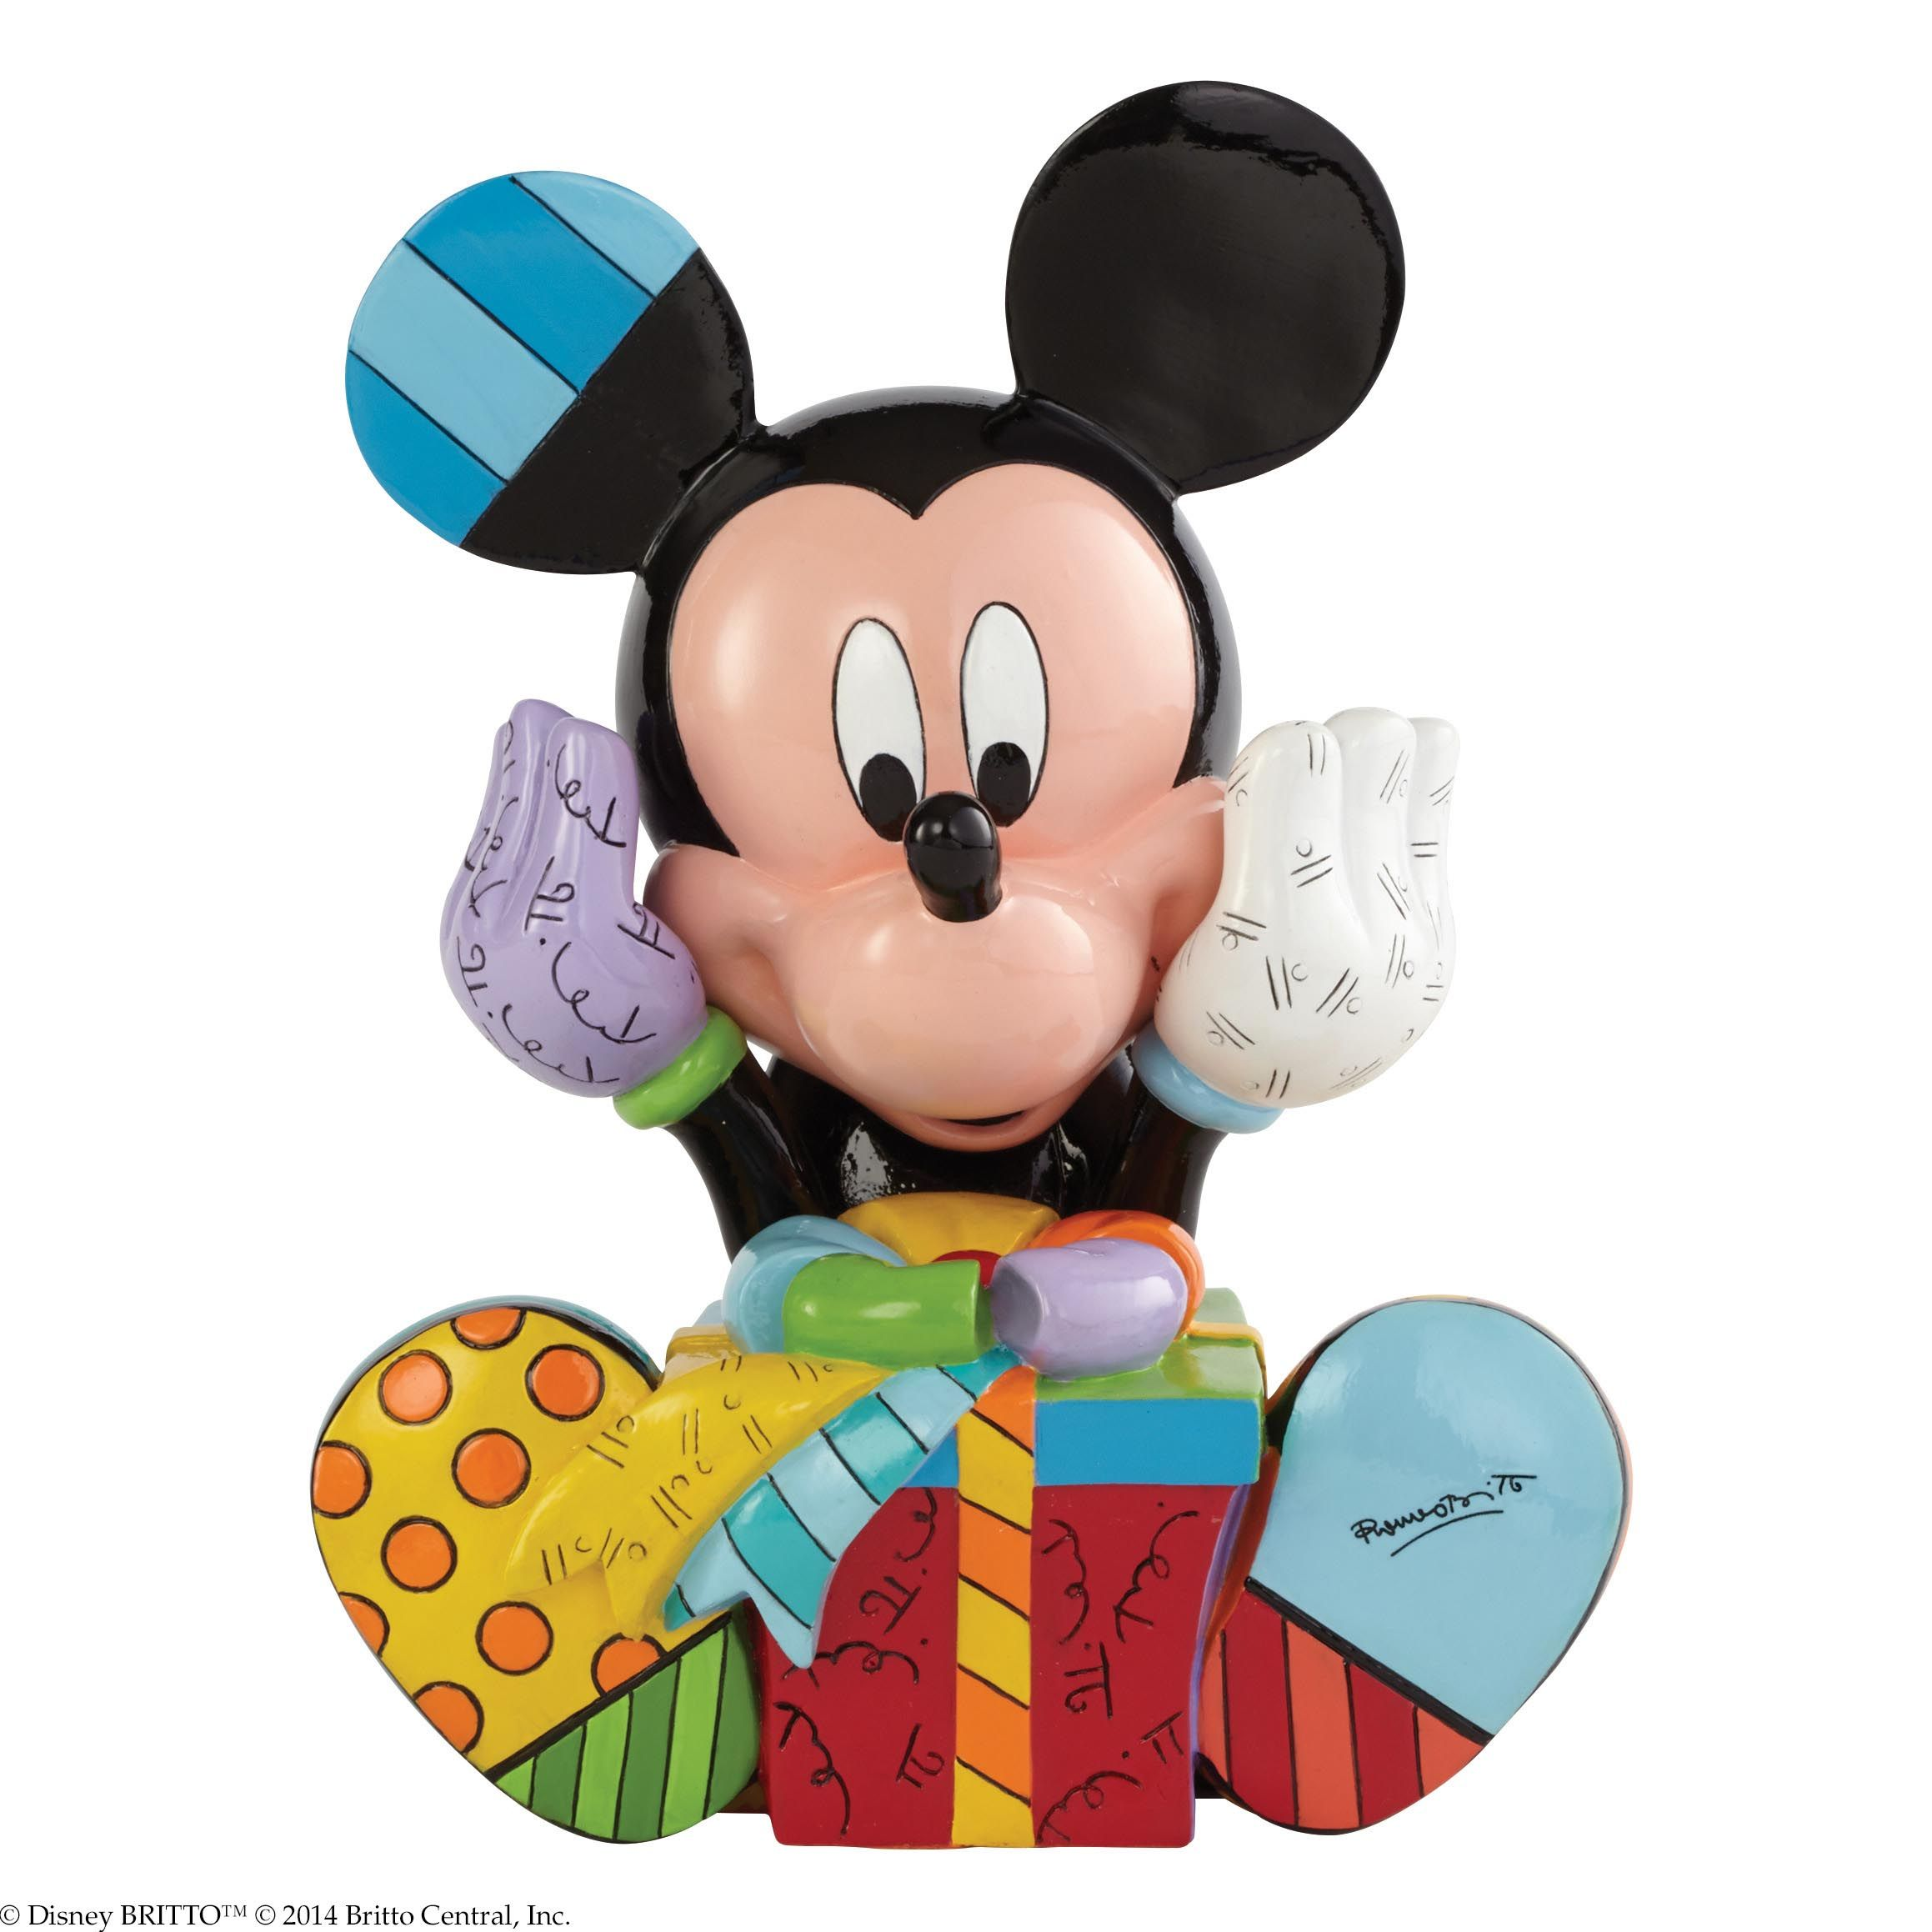 Cheerful Celebration Mickey Mouse Figurine by Jim Shore ...  |Mickey Mouse Birthday Figurines